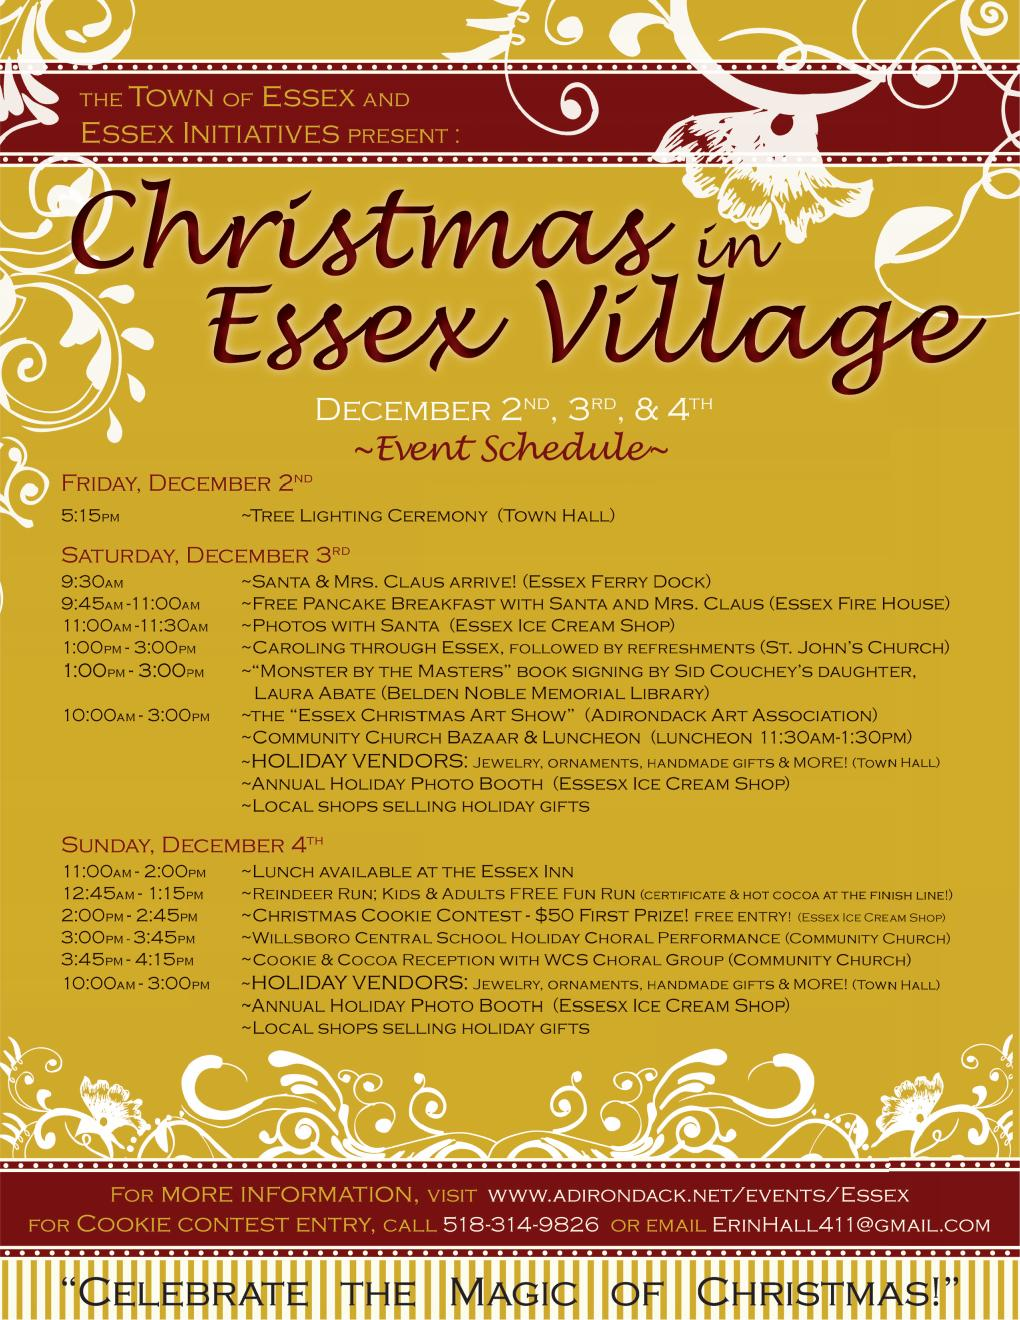 Christmas in Essex Village, 2011 Flyer